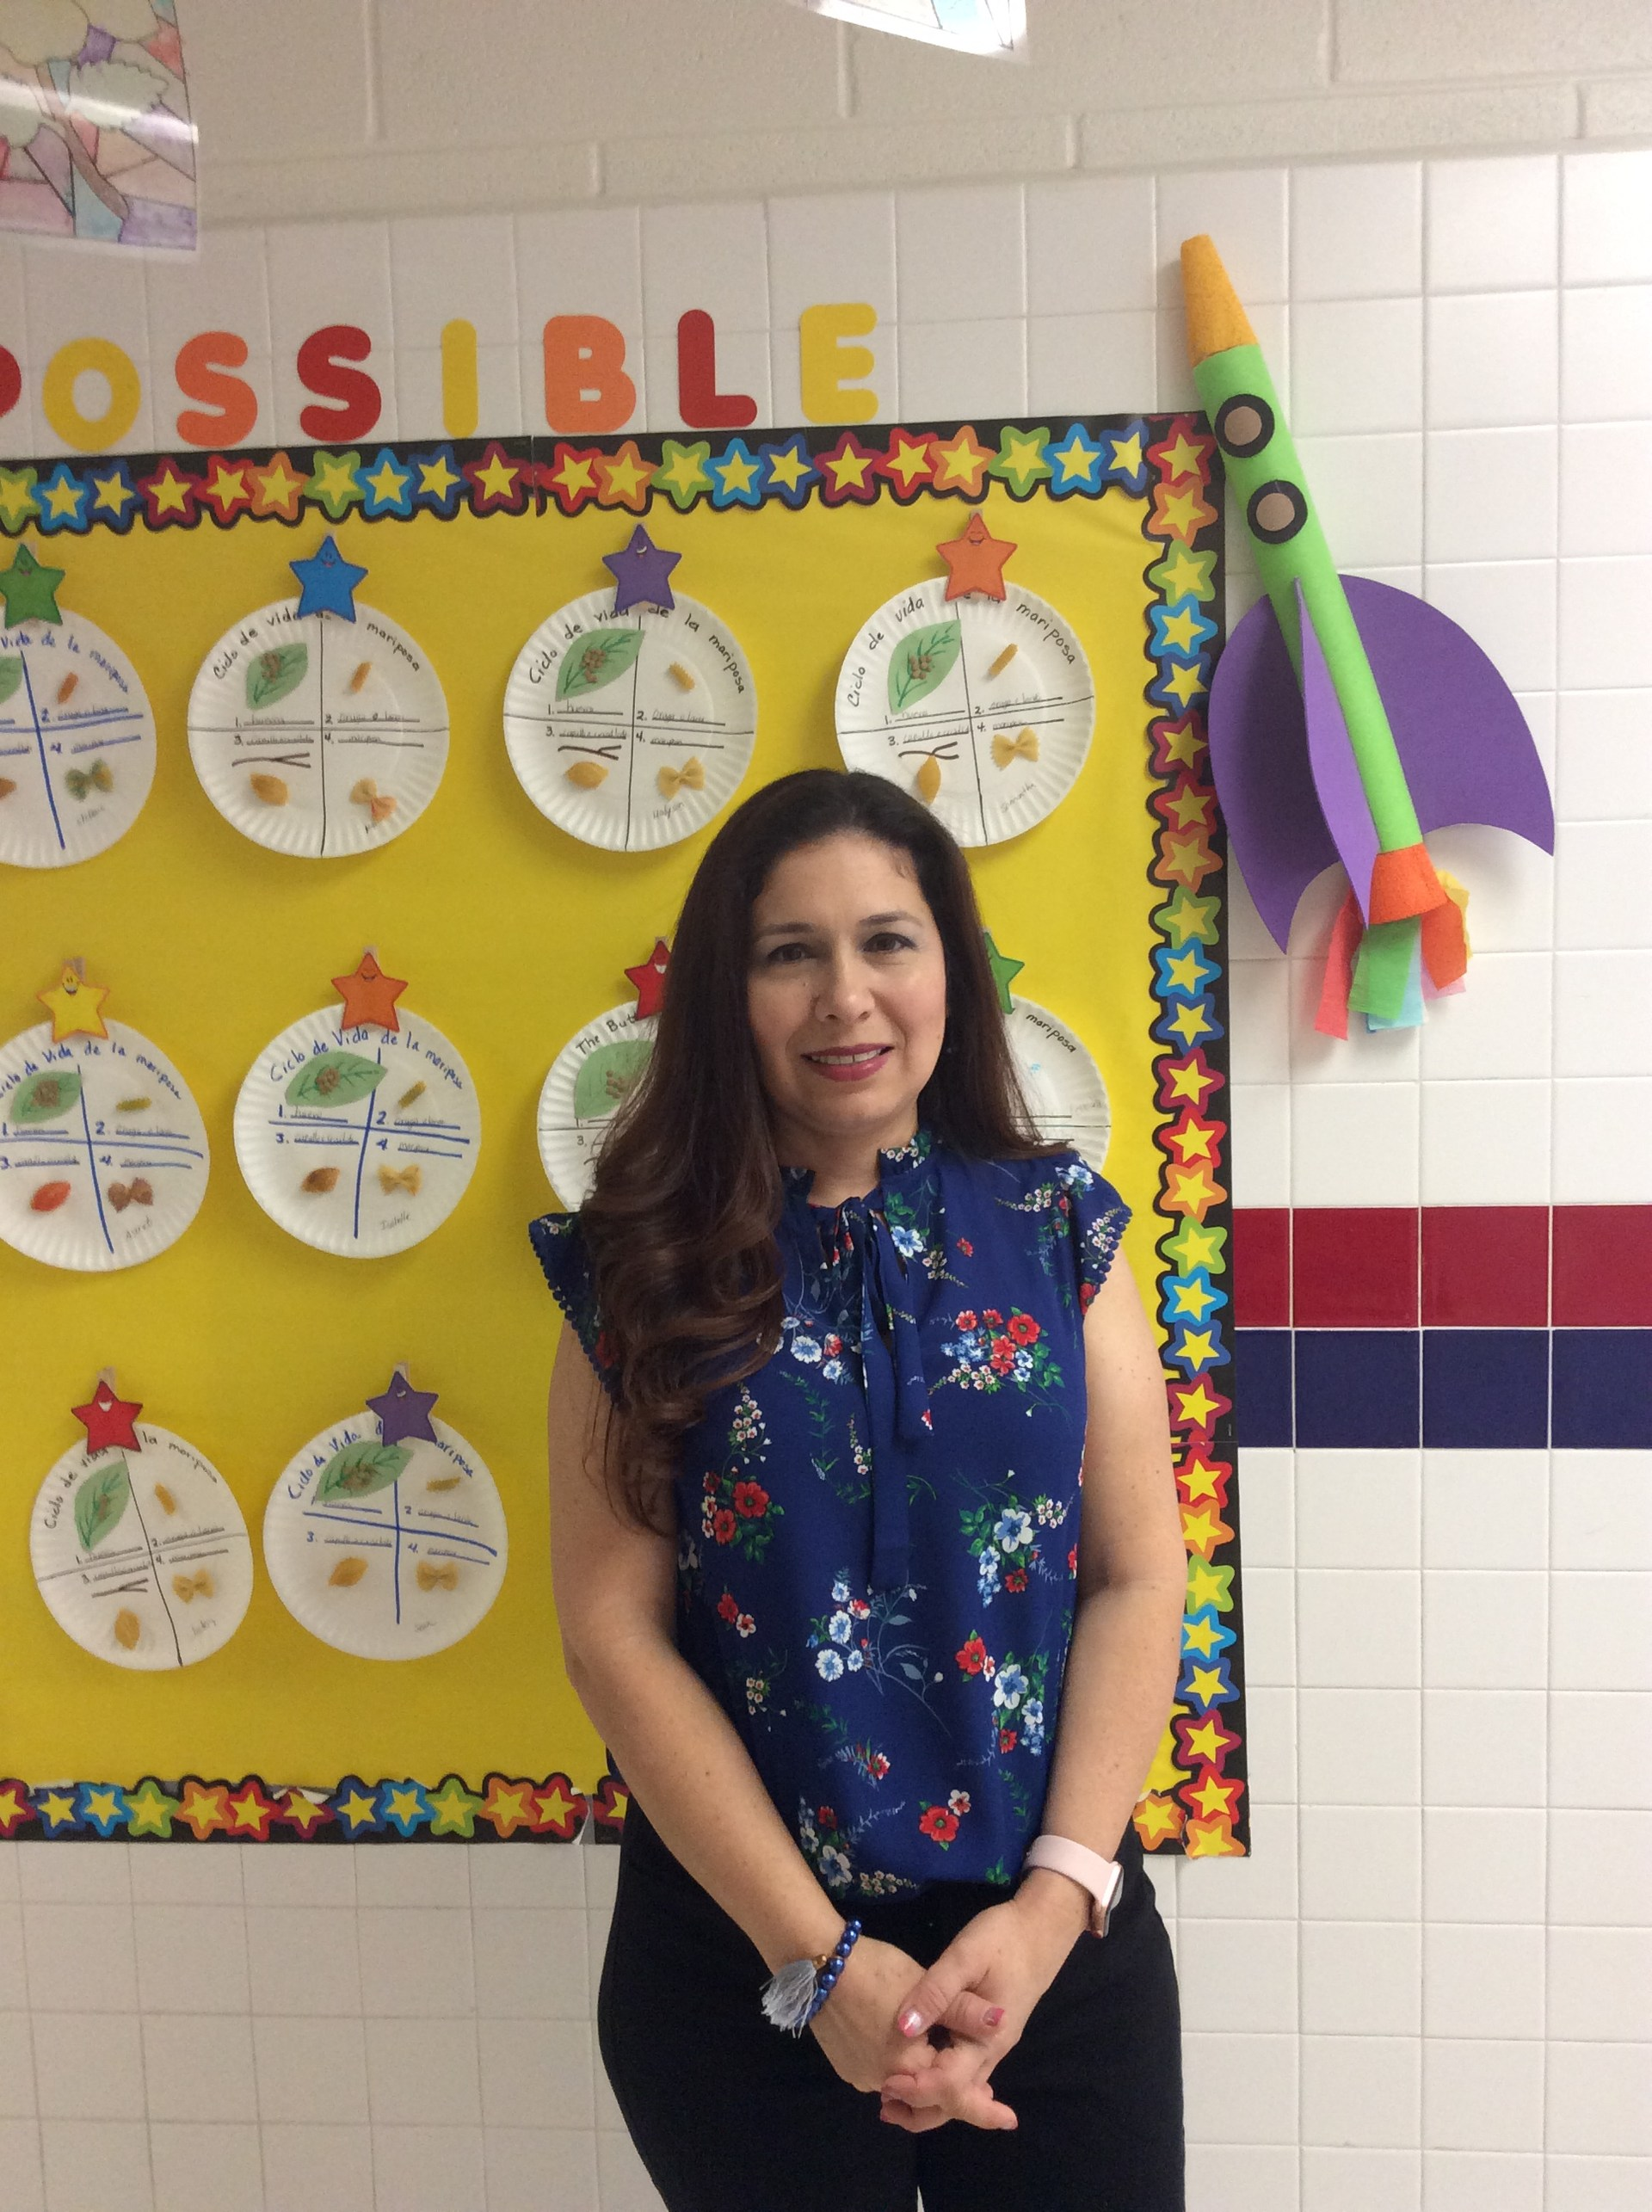 Mrs. De La Rosa posing for a picture in the hallway.